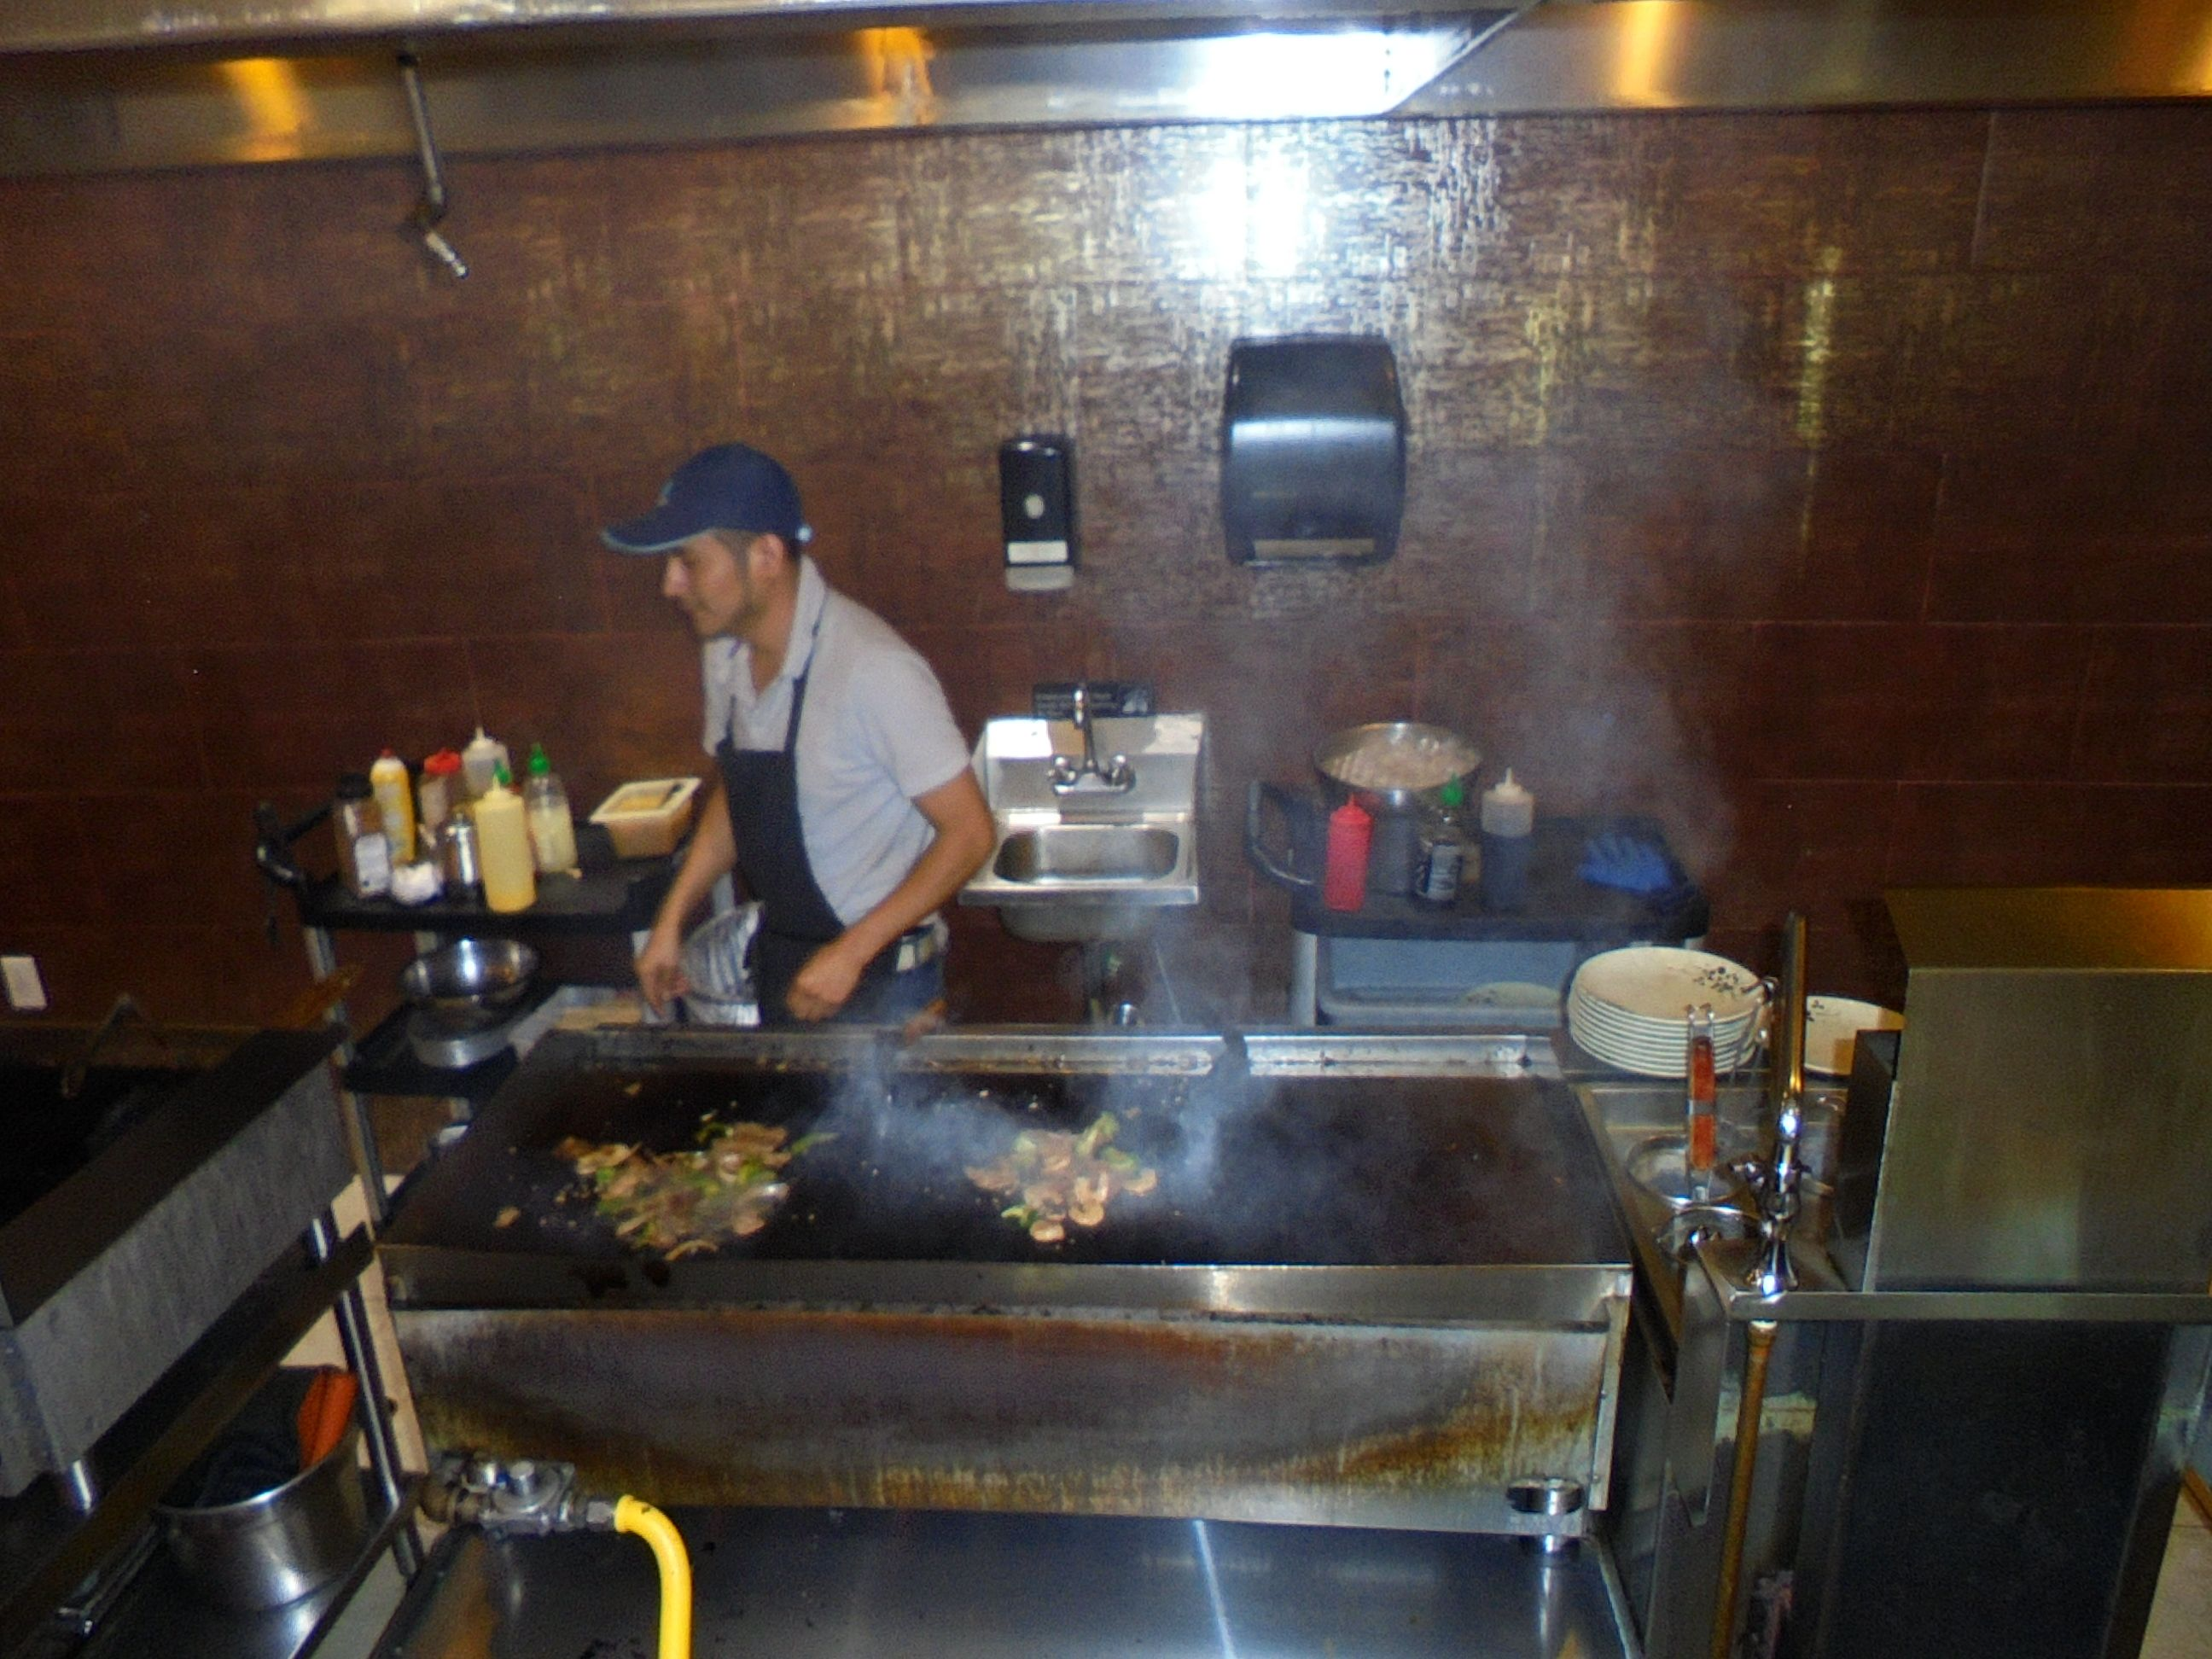 #grilling #Hibachifood in #Philadelphia @ #Panasian on #RooseveltBlvd in #Philly